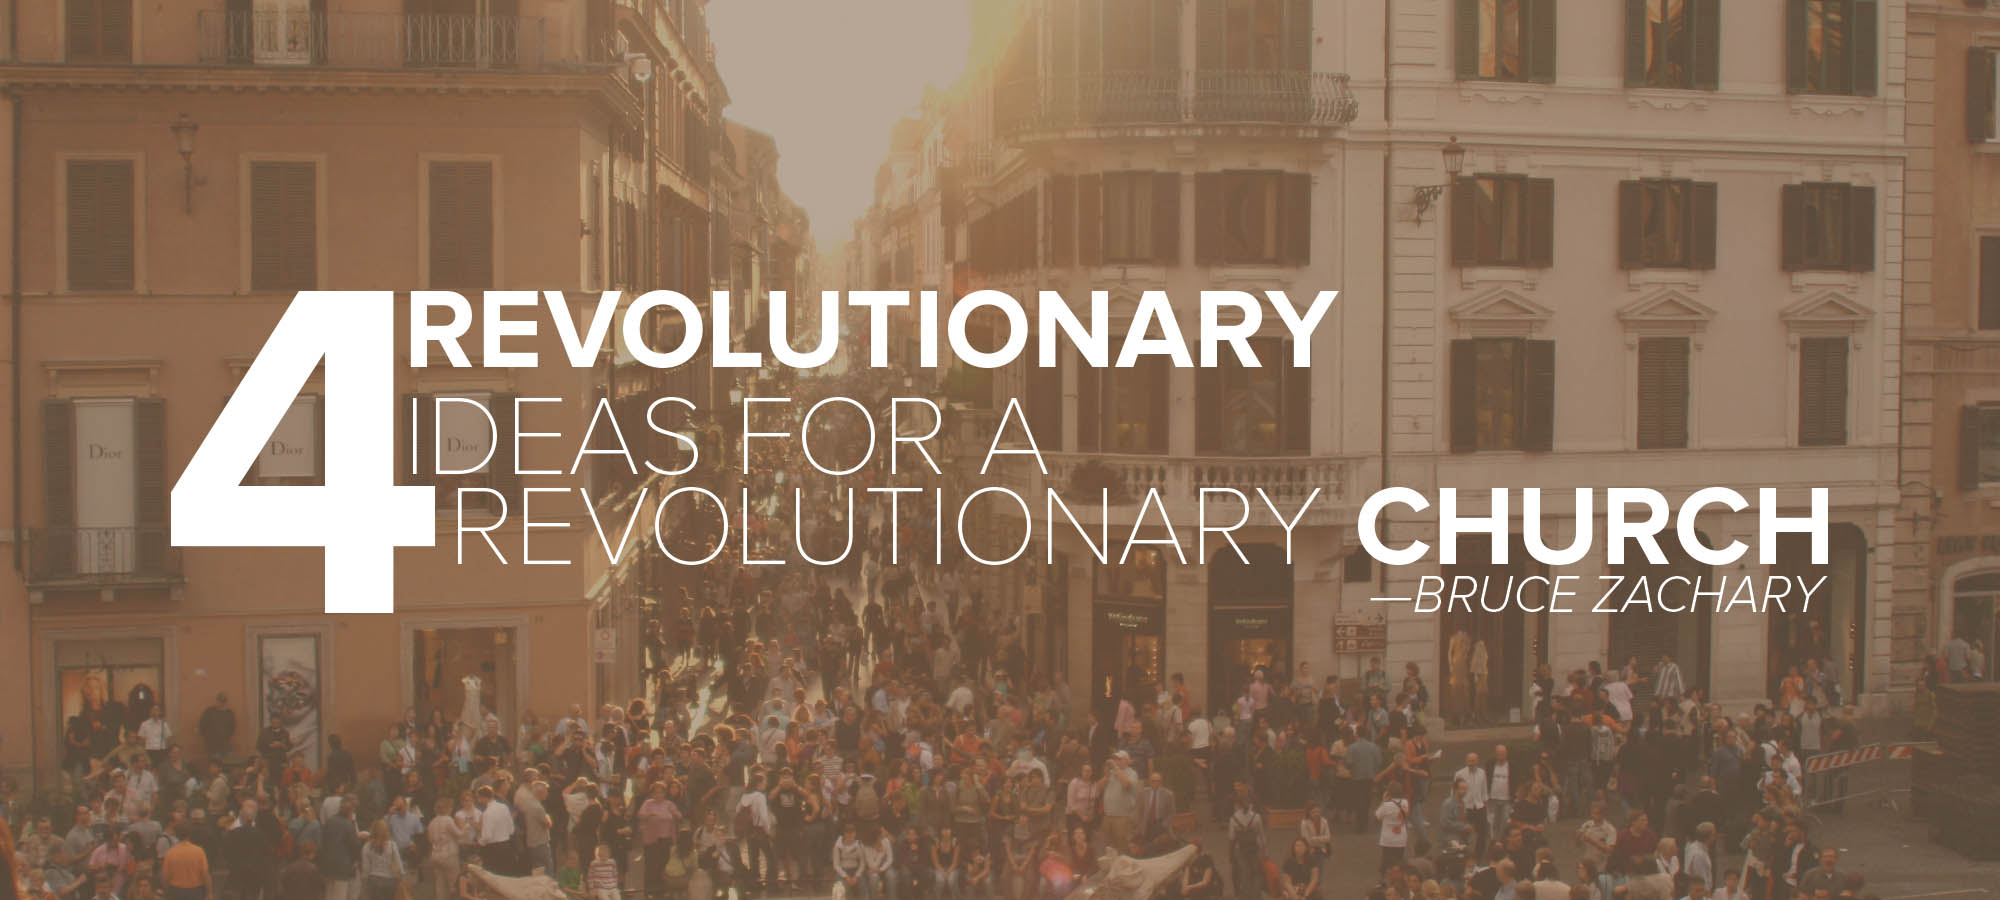 Four Revolutionary Ideas For a Revolutionary Church